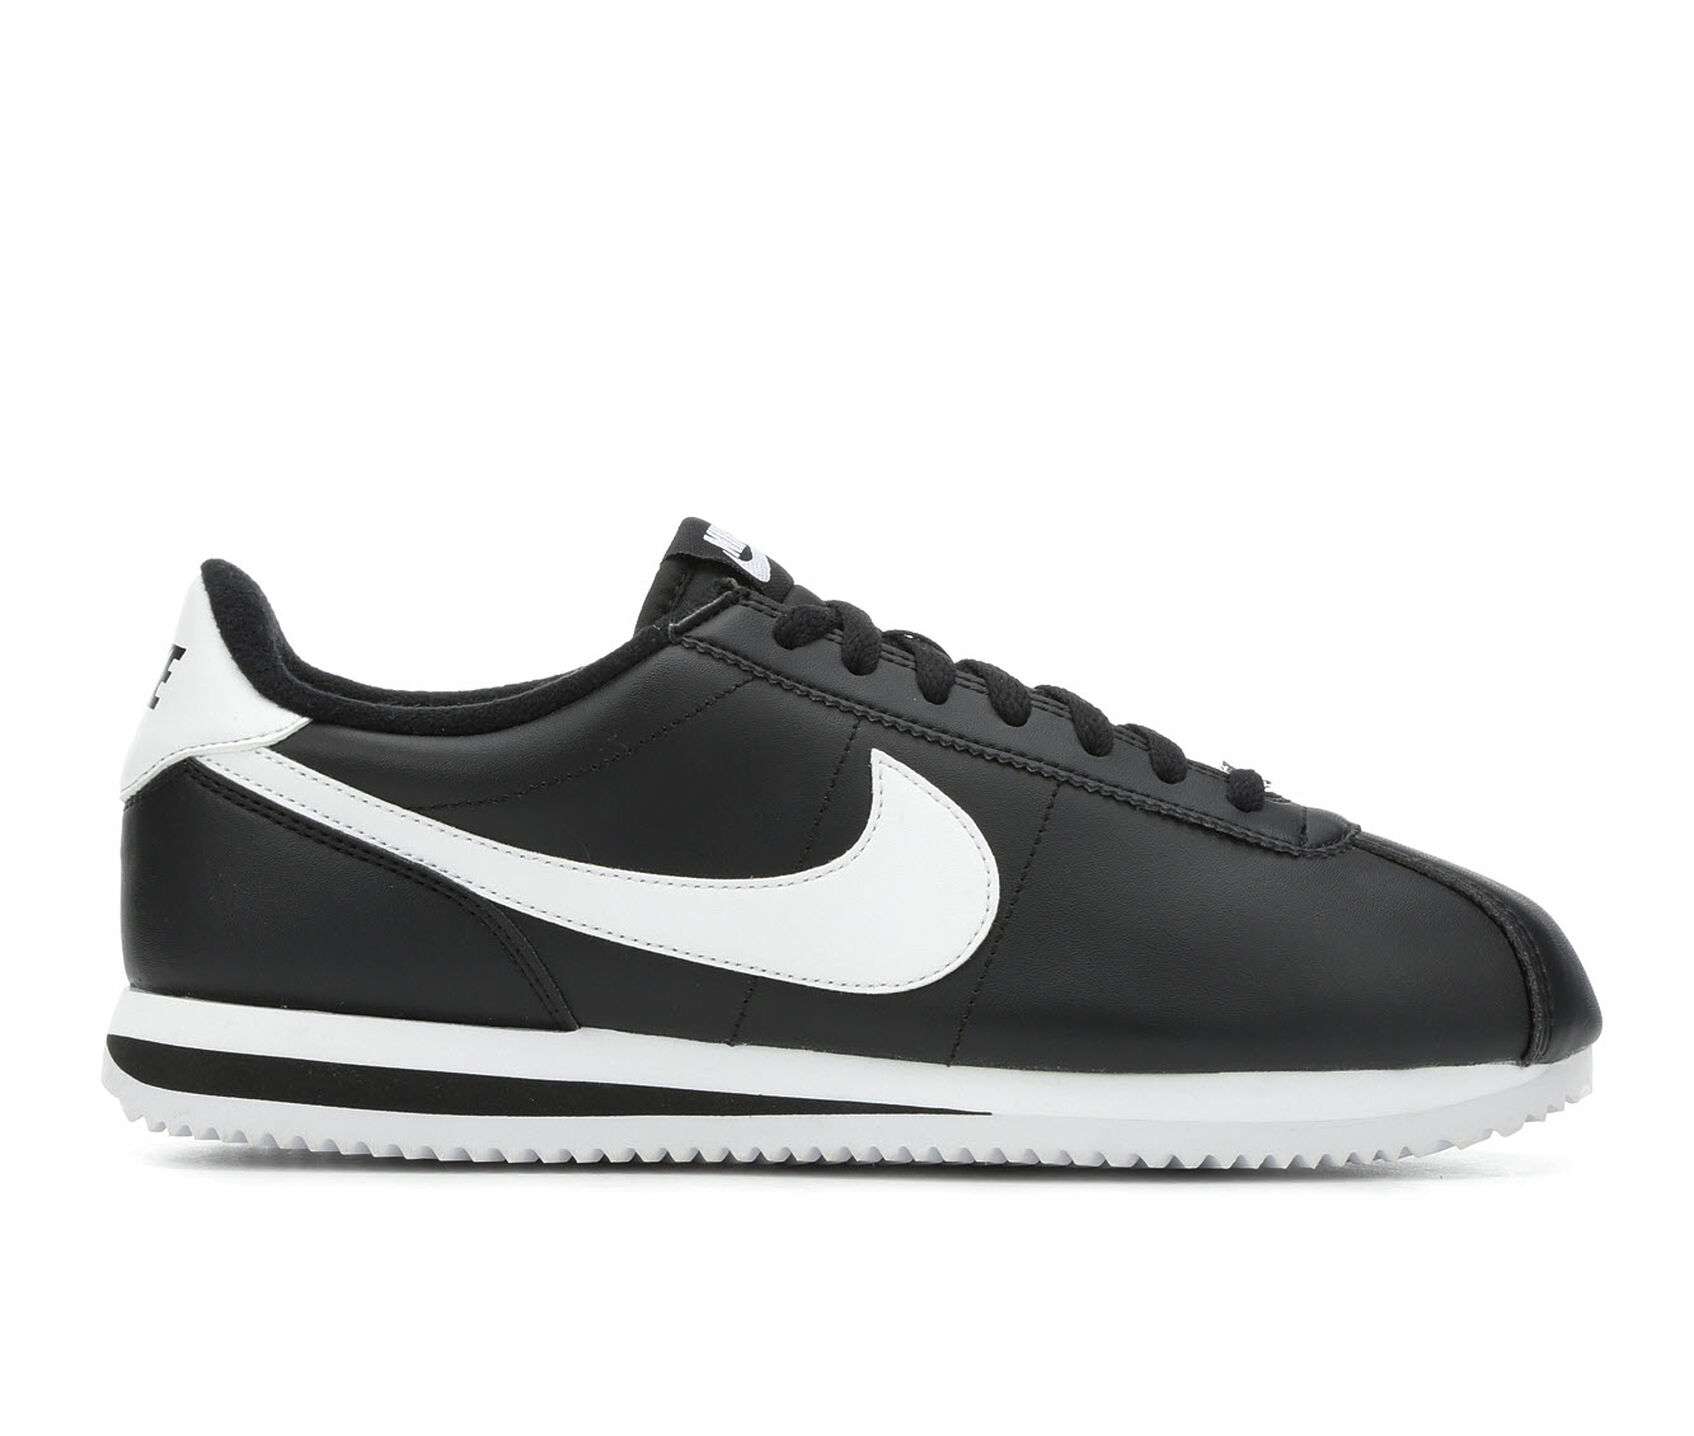 Brillante Depresión De ninguna manera  Men's Nike Cortez Basic Leather Sneakers | Shoe Carnival